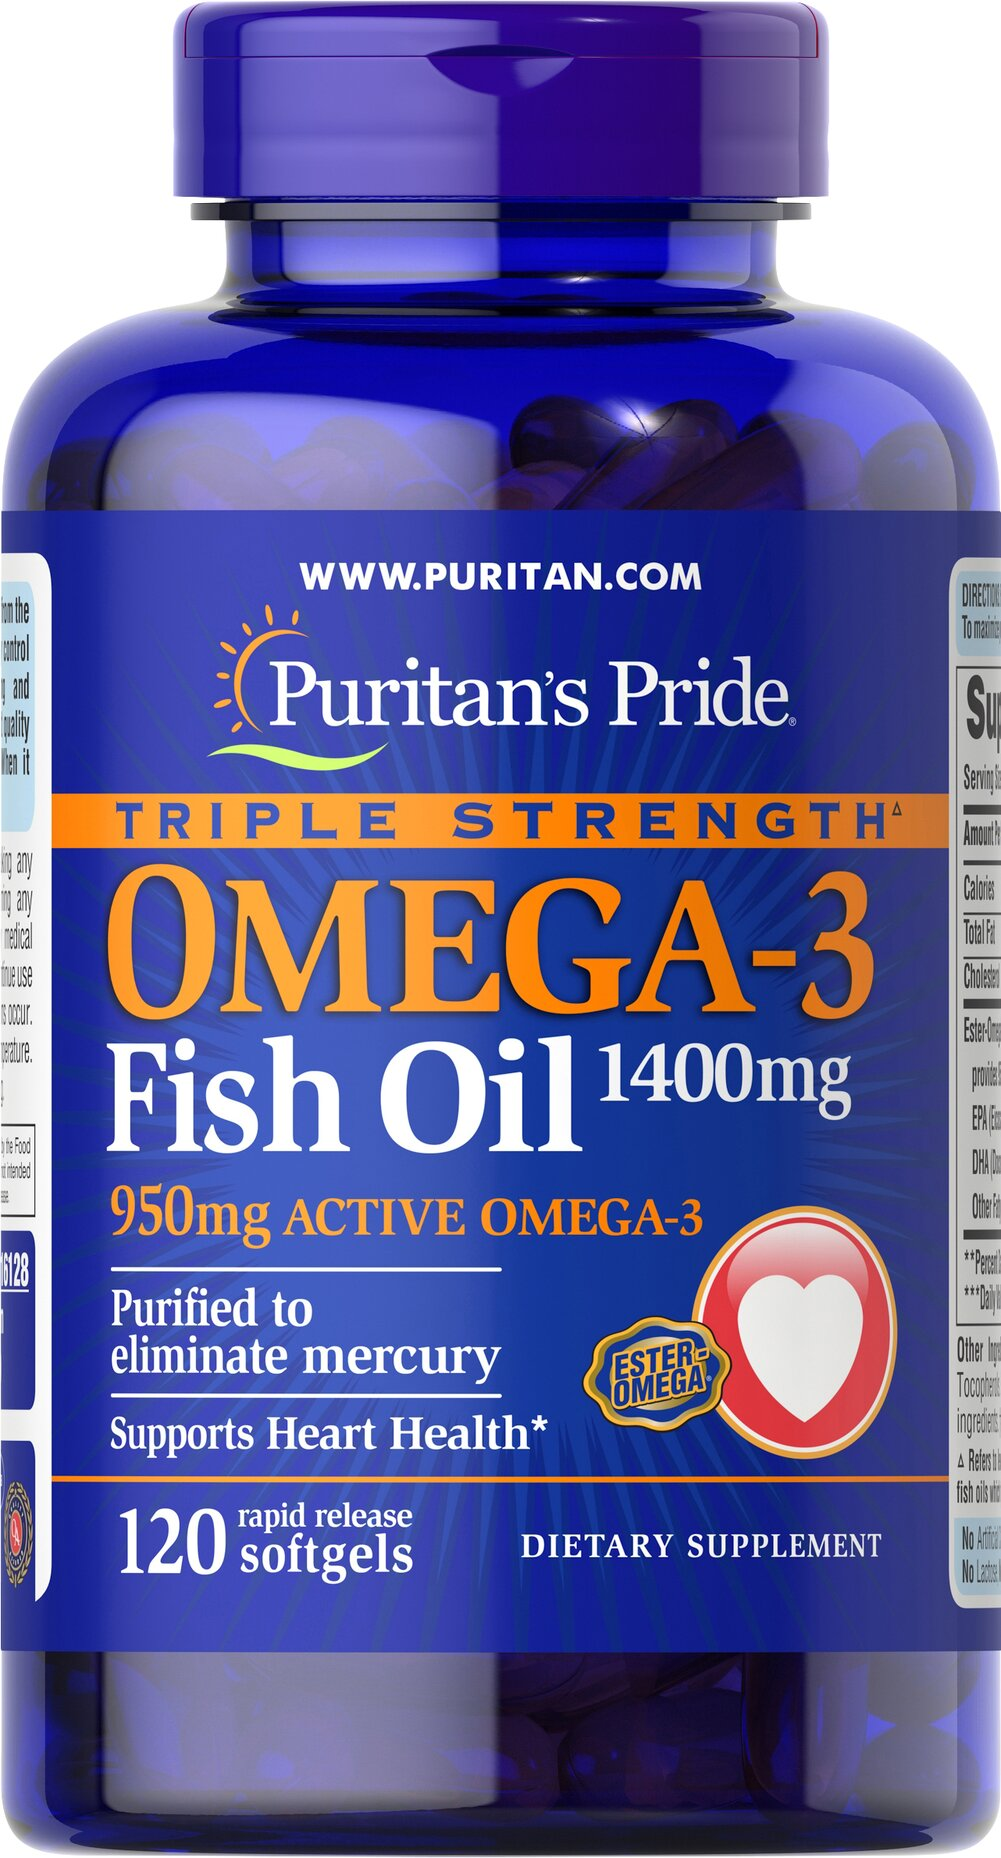 Triple Strength Omega-3 Fish Oil 1360 mg <p><strong>Purified to Eliminate Mercury</strong></p><p>Contains 950 mg of active Omega-3 per softgel — our highest potency! </p> 120 Softgels 1360 mg $39.99